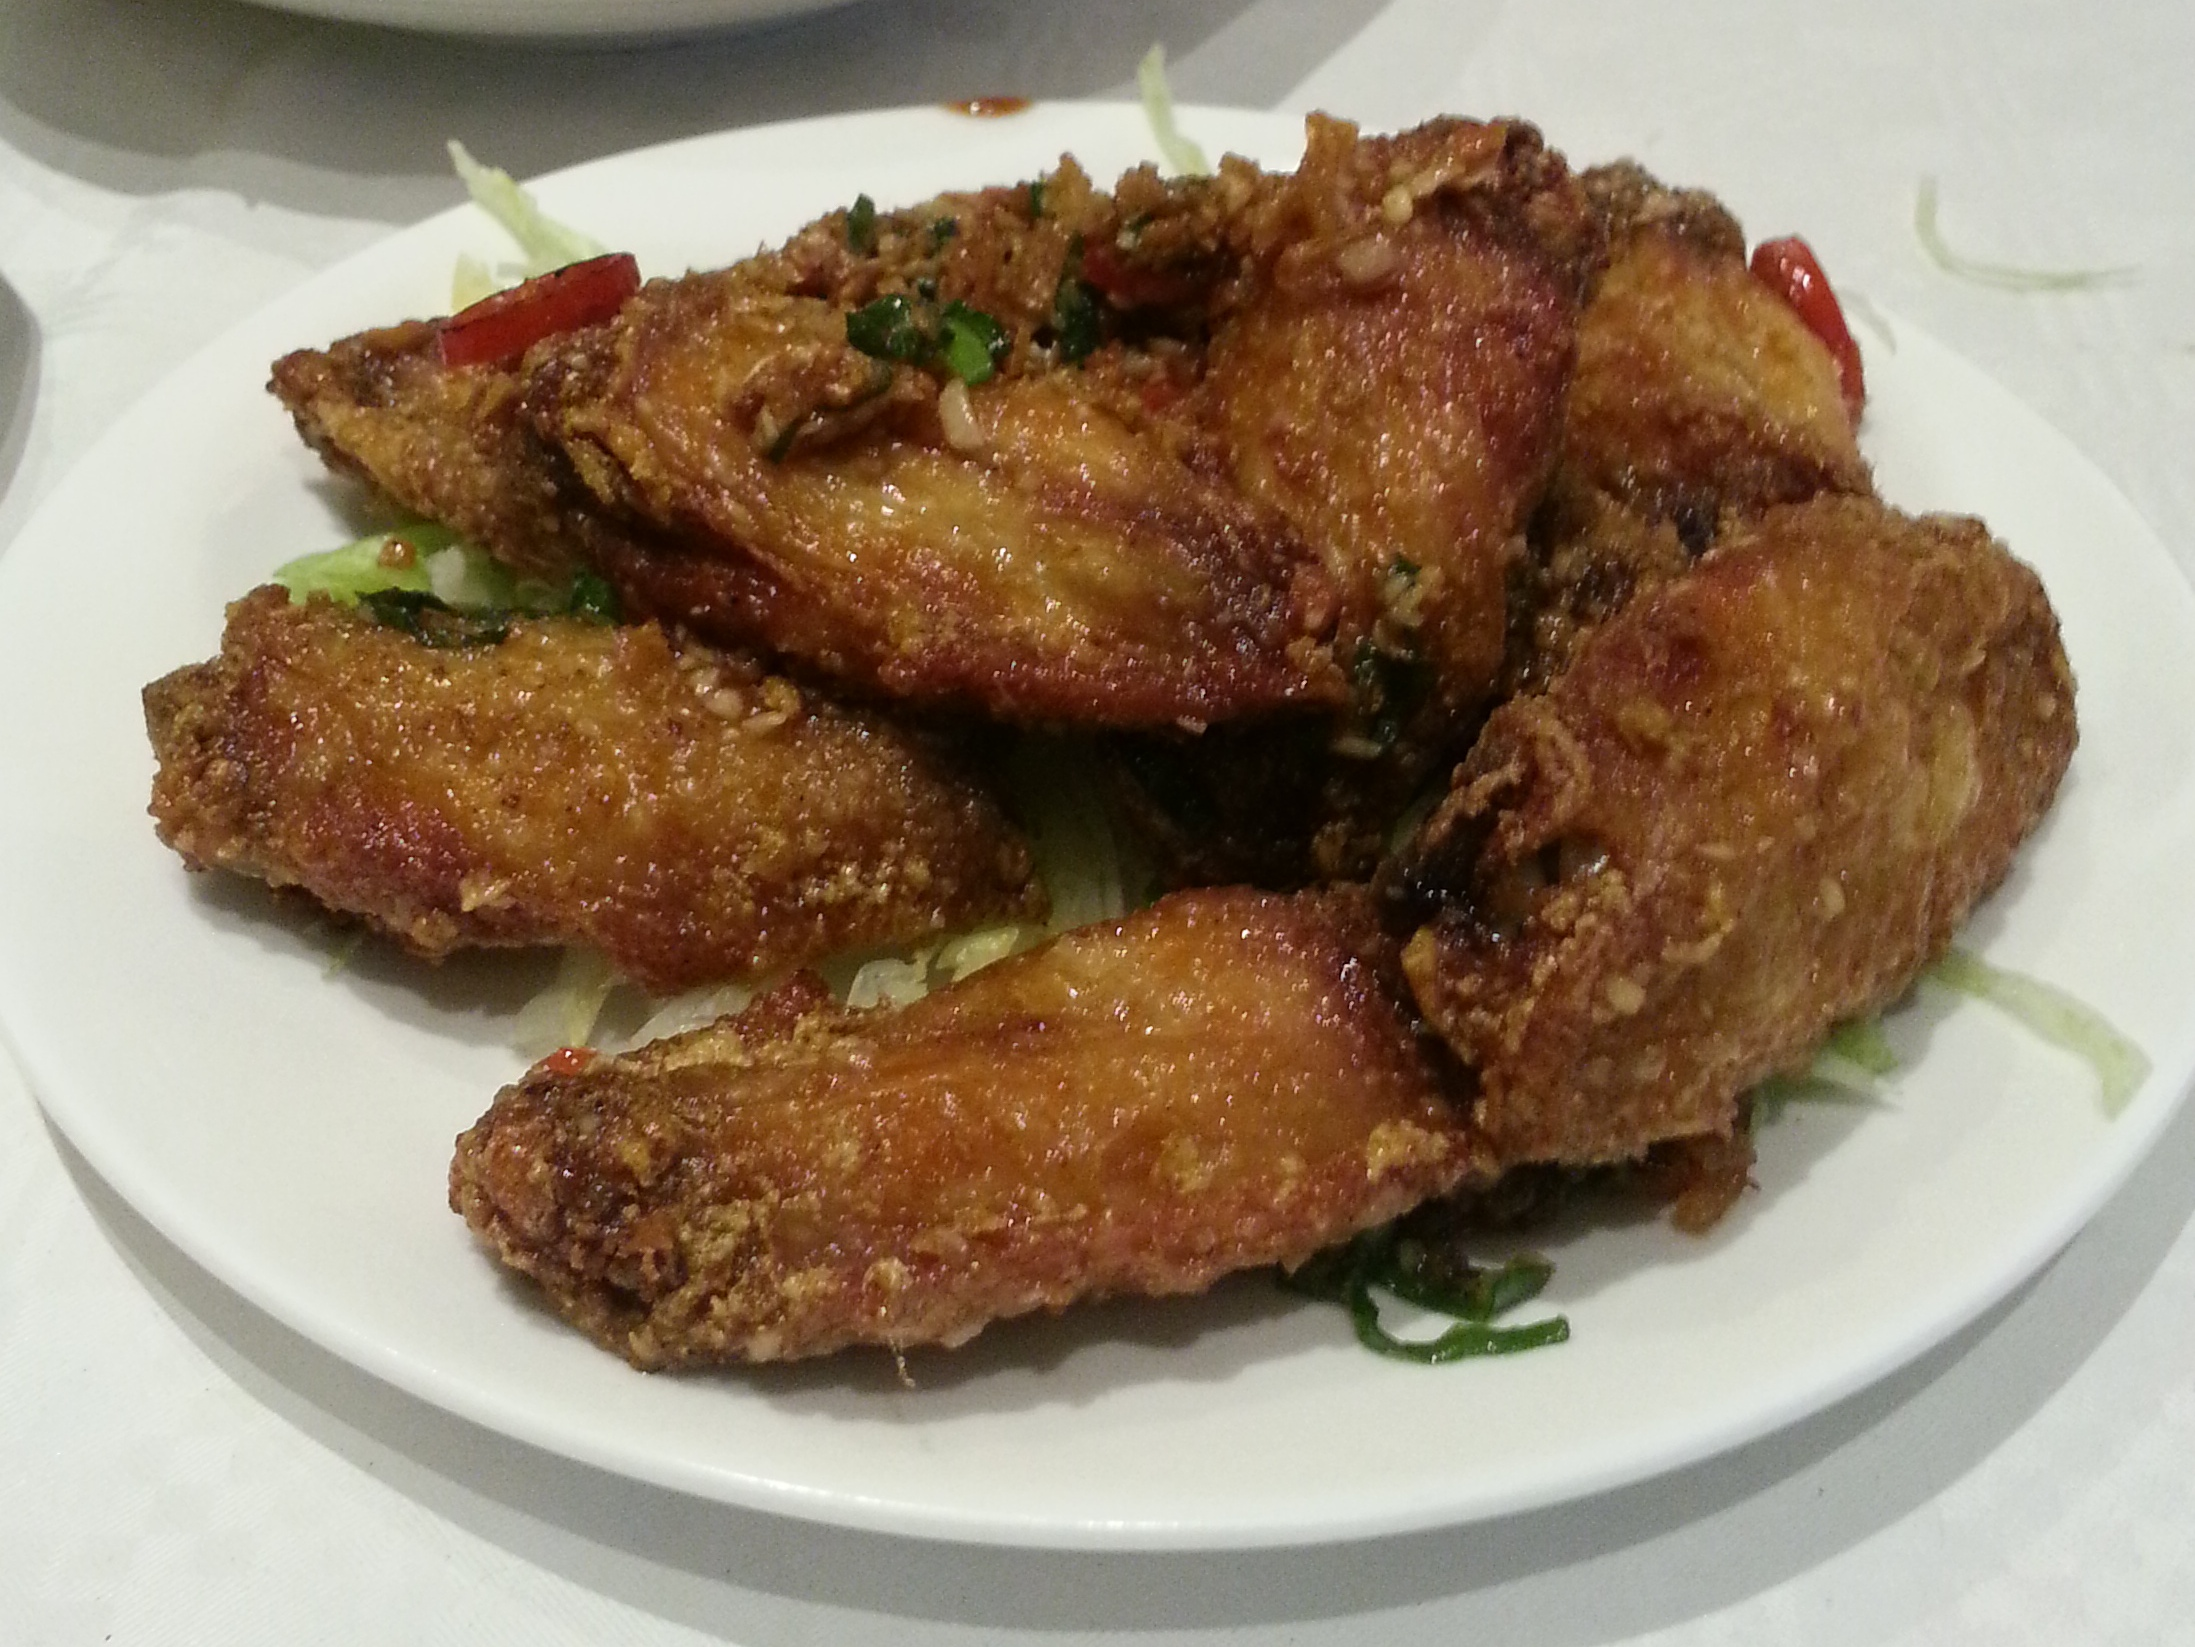 Grand garden - fried chicken wings